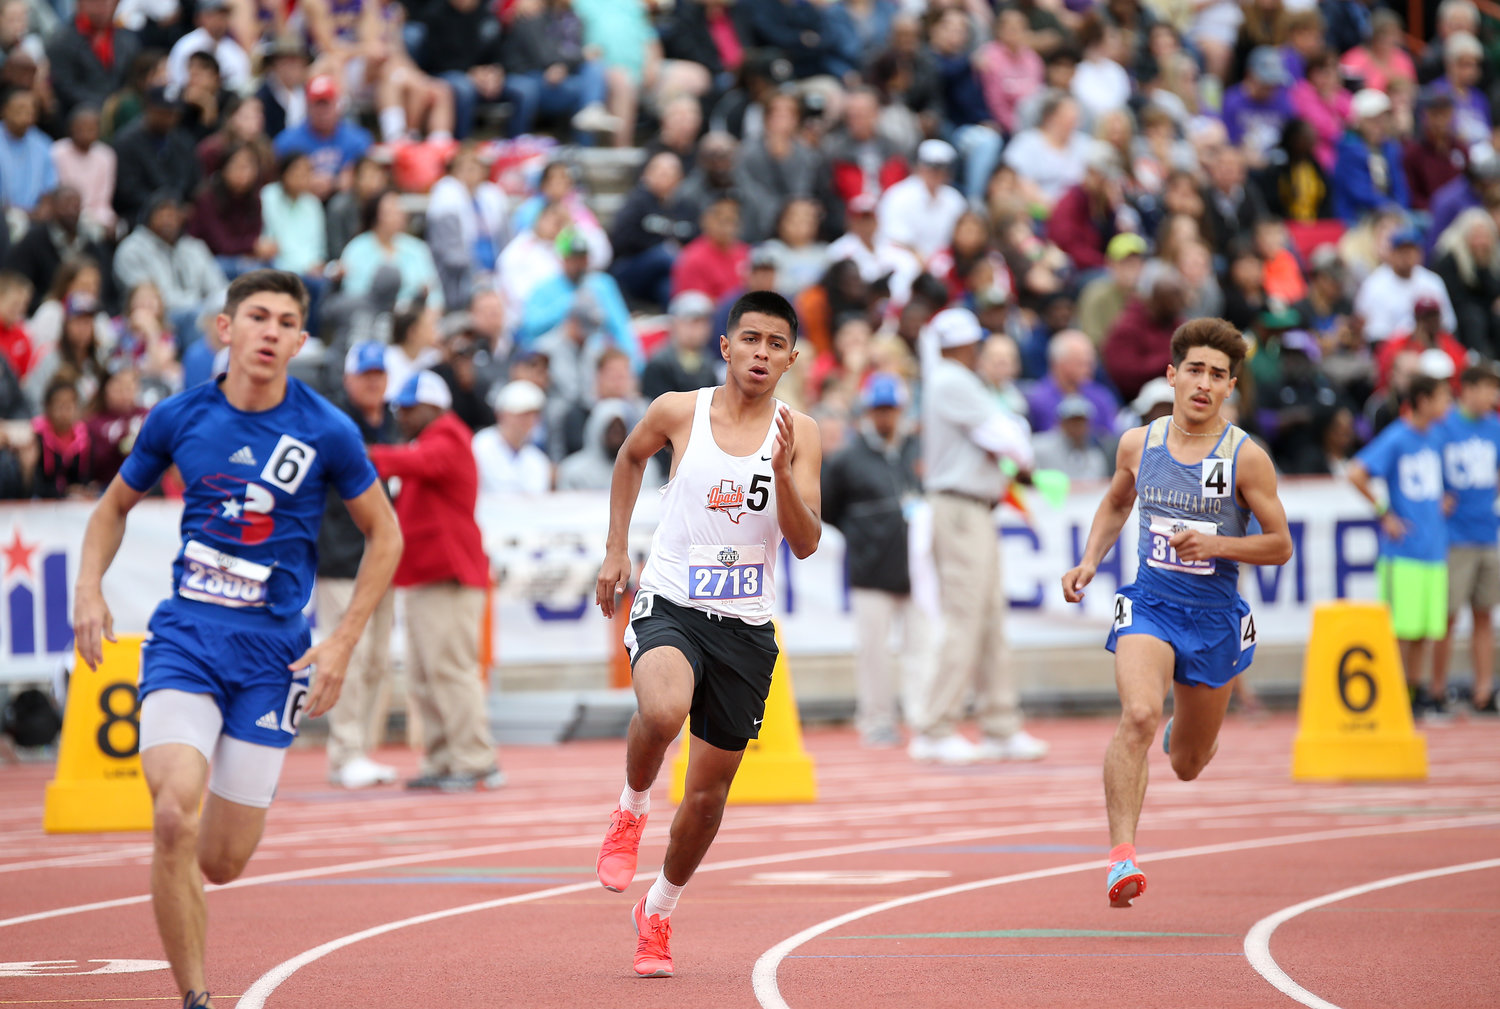 Antonio Hernandez of Gonzales High School runs in the Class 4A boys 800-meter run at the UIL State Track and Field Meet on Saturday, May 11, 2019 at Mike A. Myers Stadium in Austin, Texas.